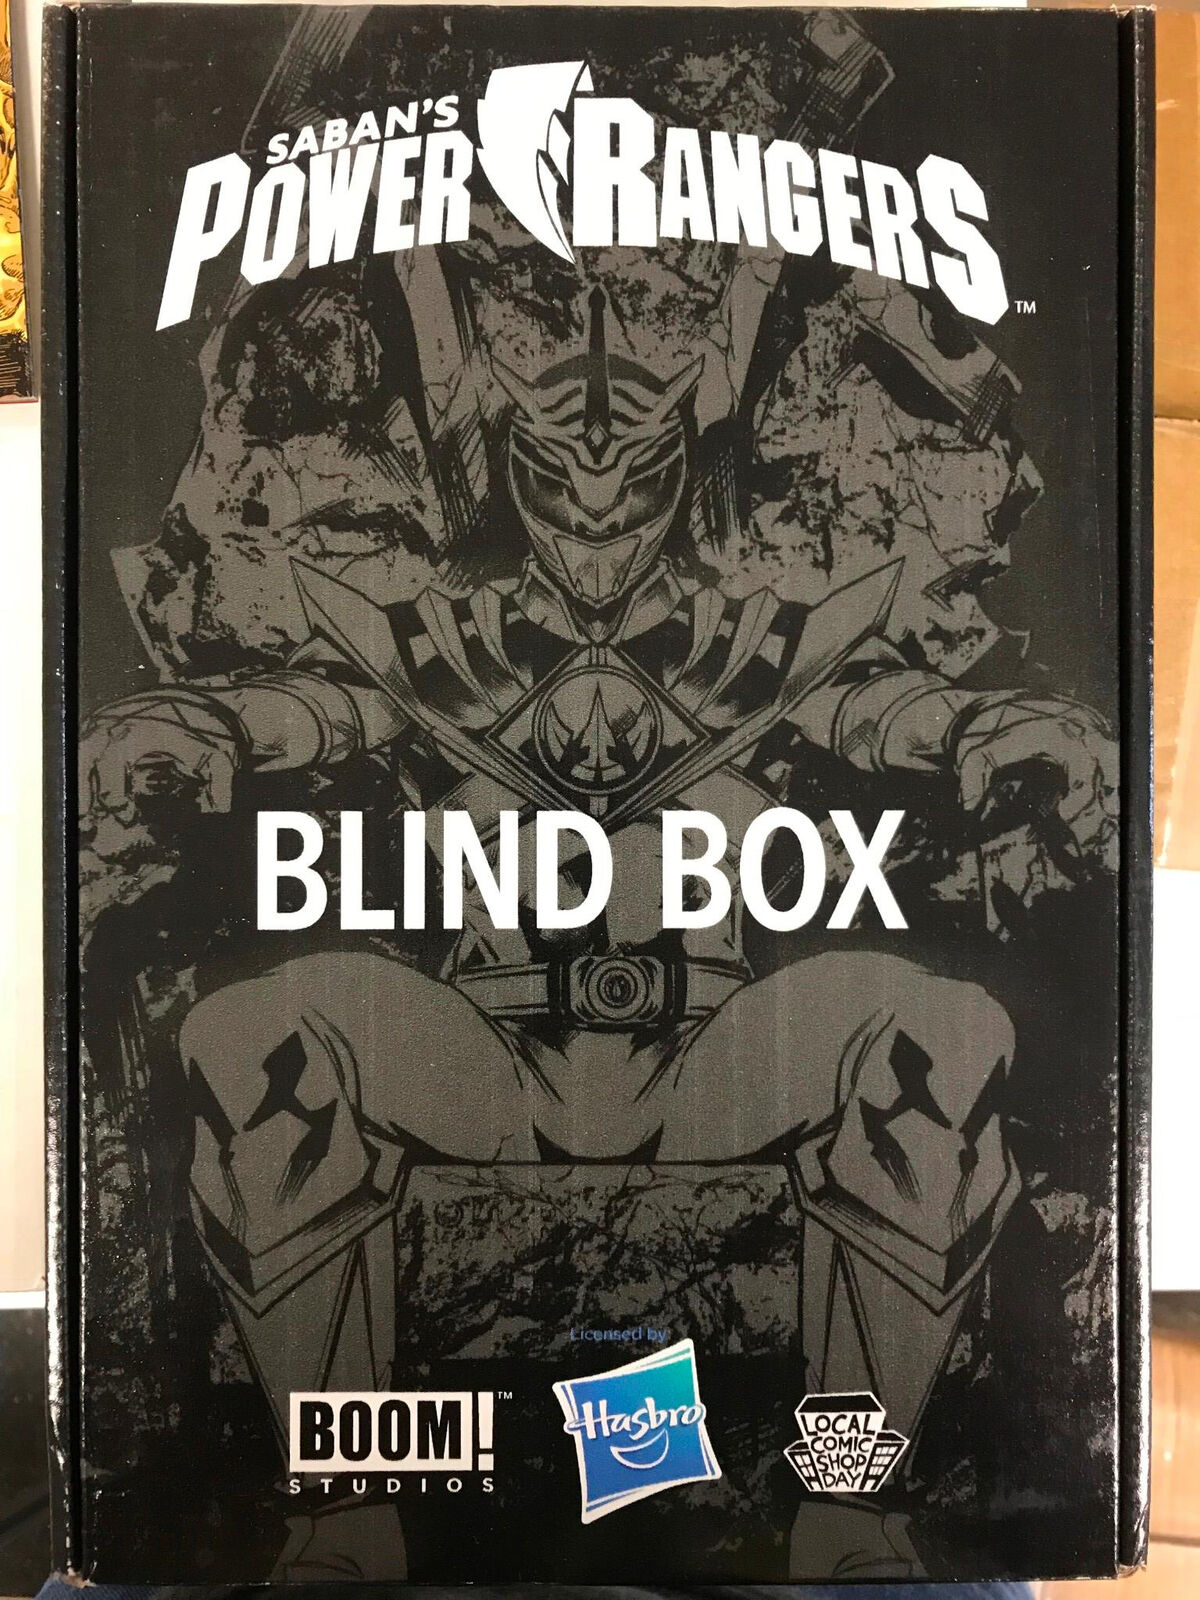 MIGHTY MORPHIN MORPHIN MORPHIN POWER RANGERS LCSD BLIND BOX Local Comic Shop Day SEALED MMPR eb05ba